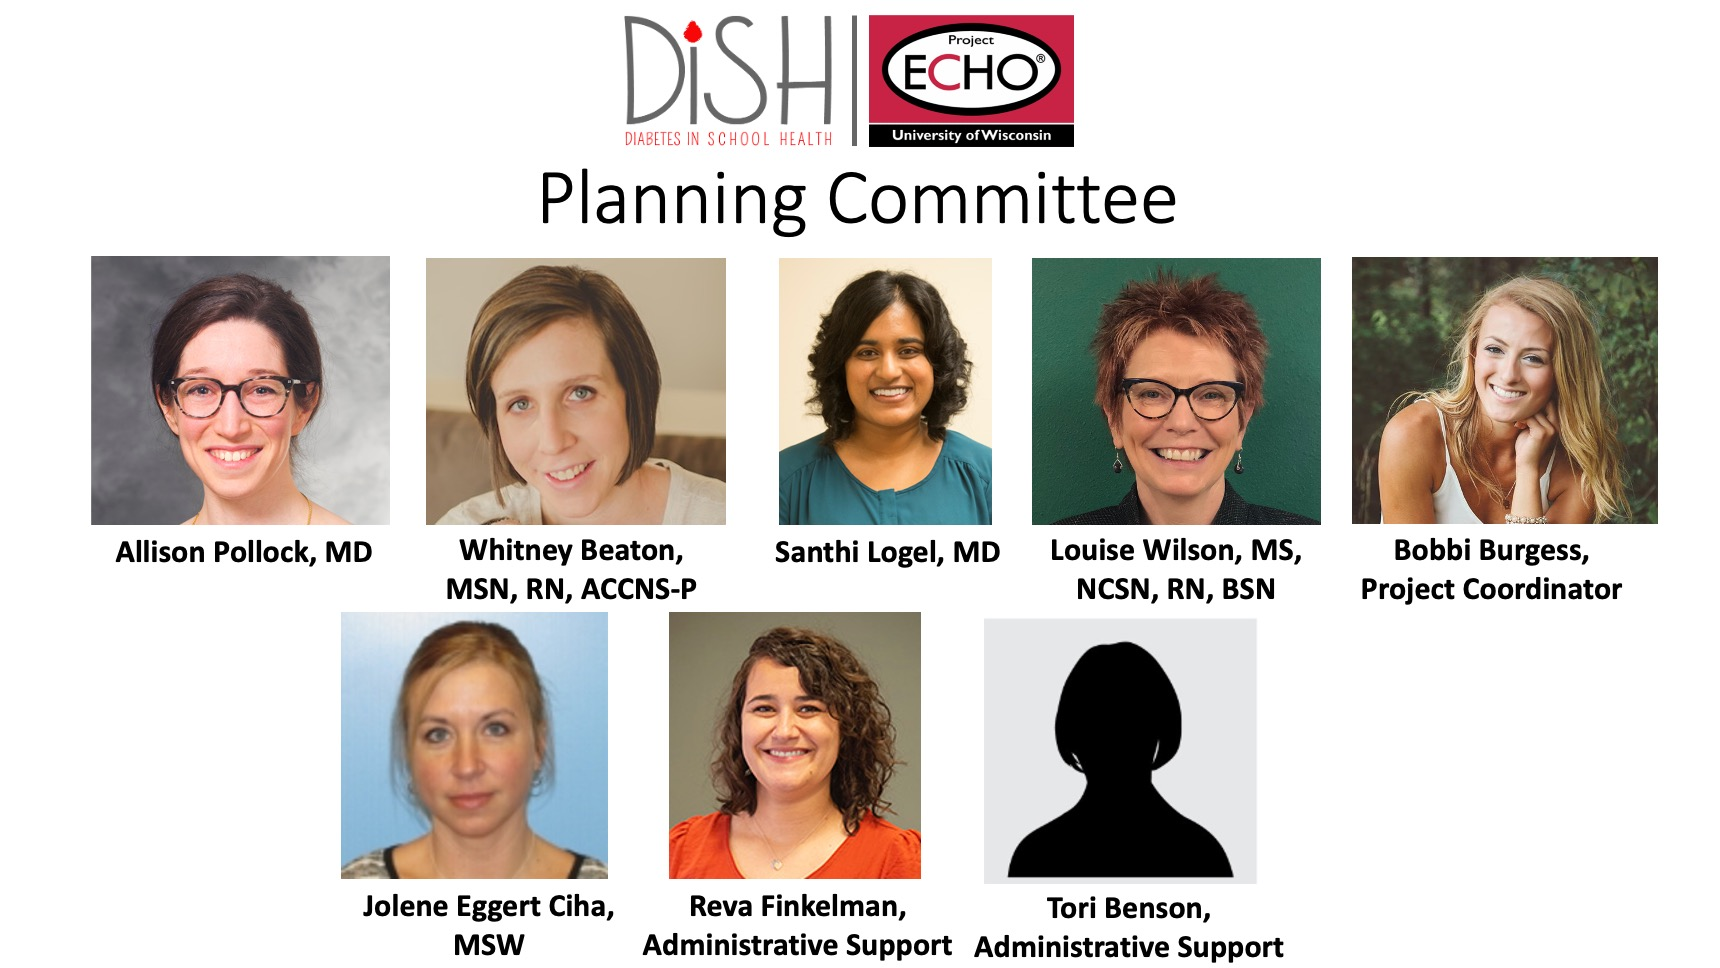 DiSH Planning Committee